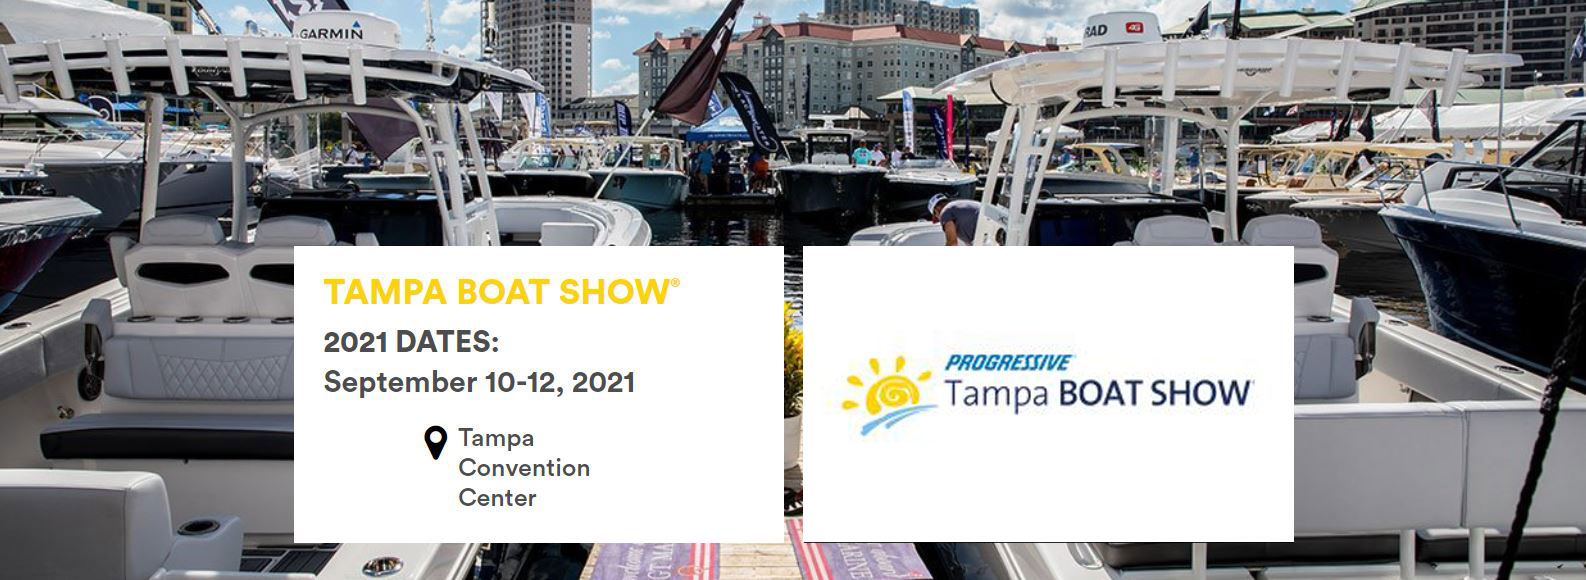 Tampa Boat Show Picture